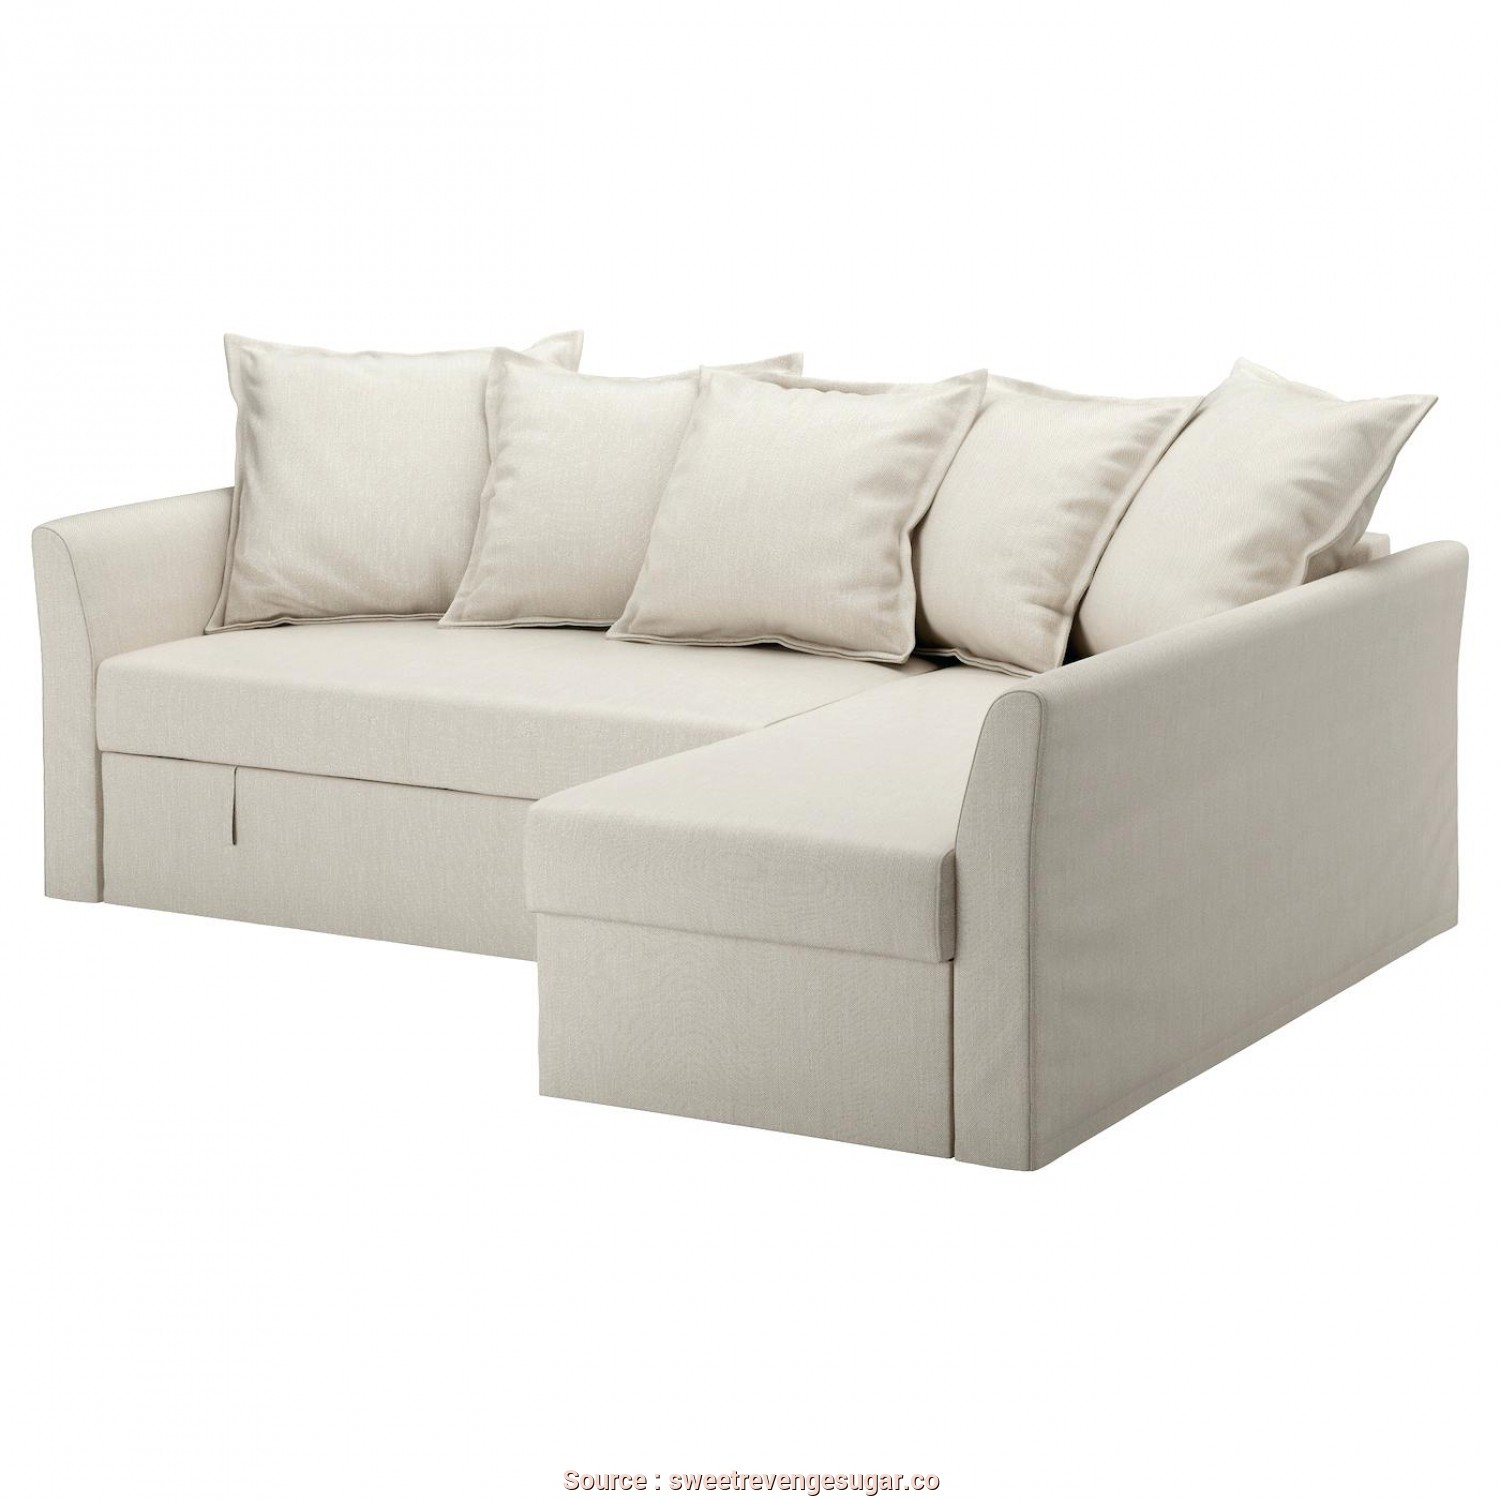 Beddinge Ikea Malaysia, Magnifico Ikea Sofa, Graceful Sofa Beds Transform Sleeper With Charming